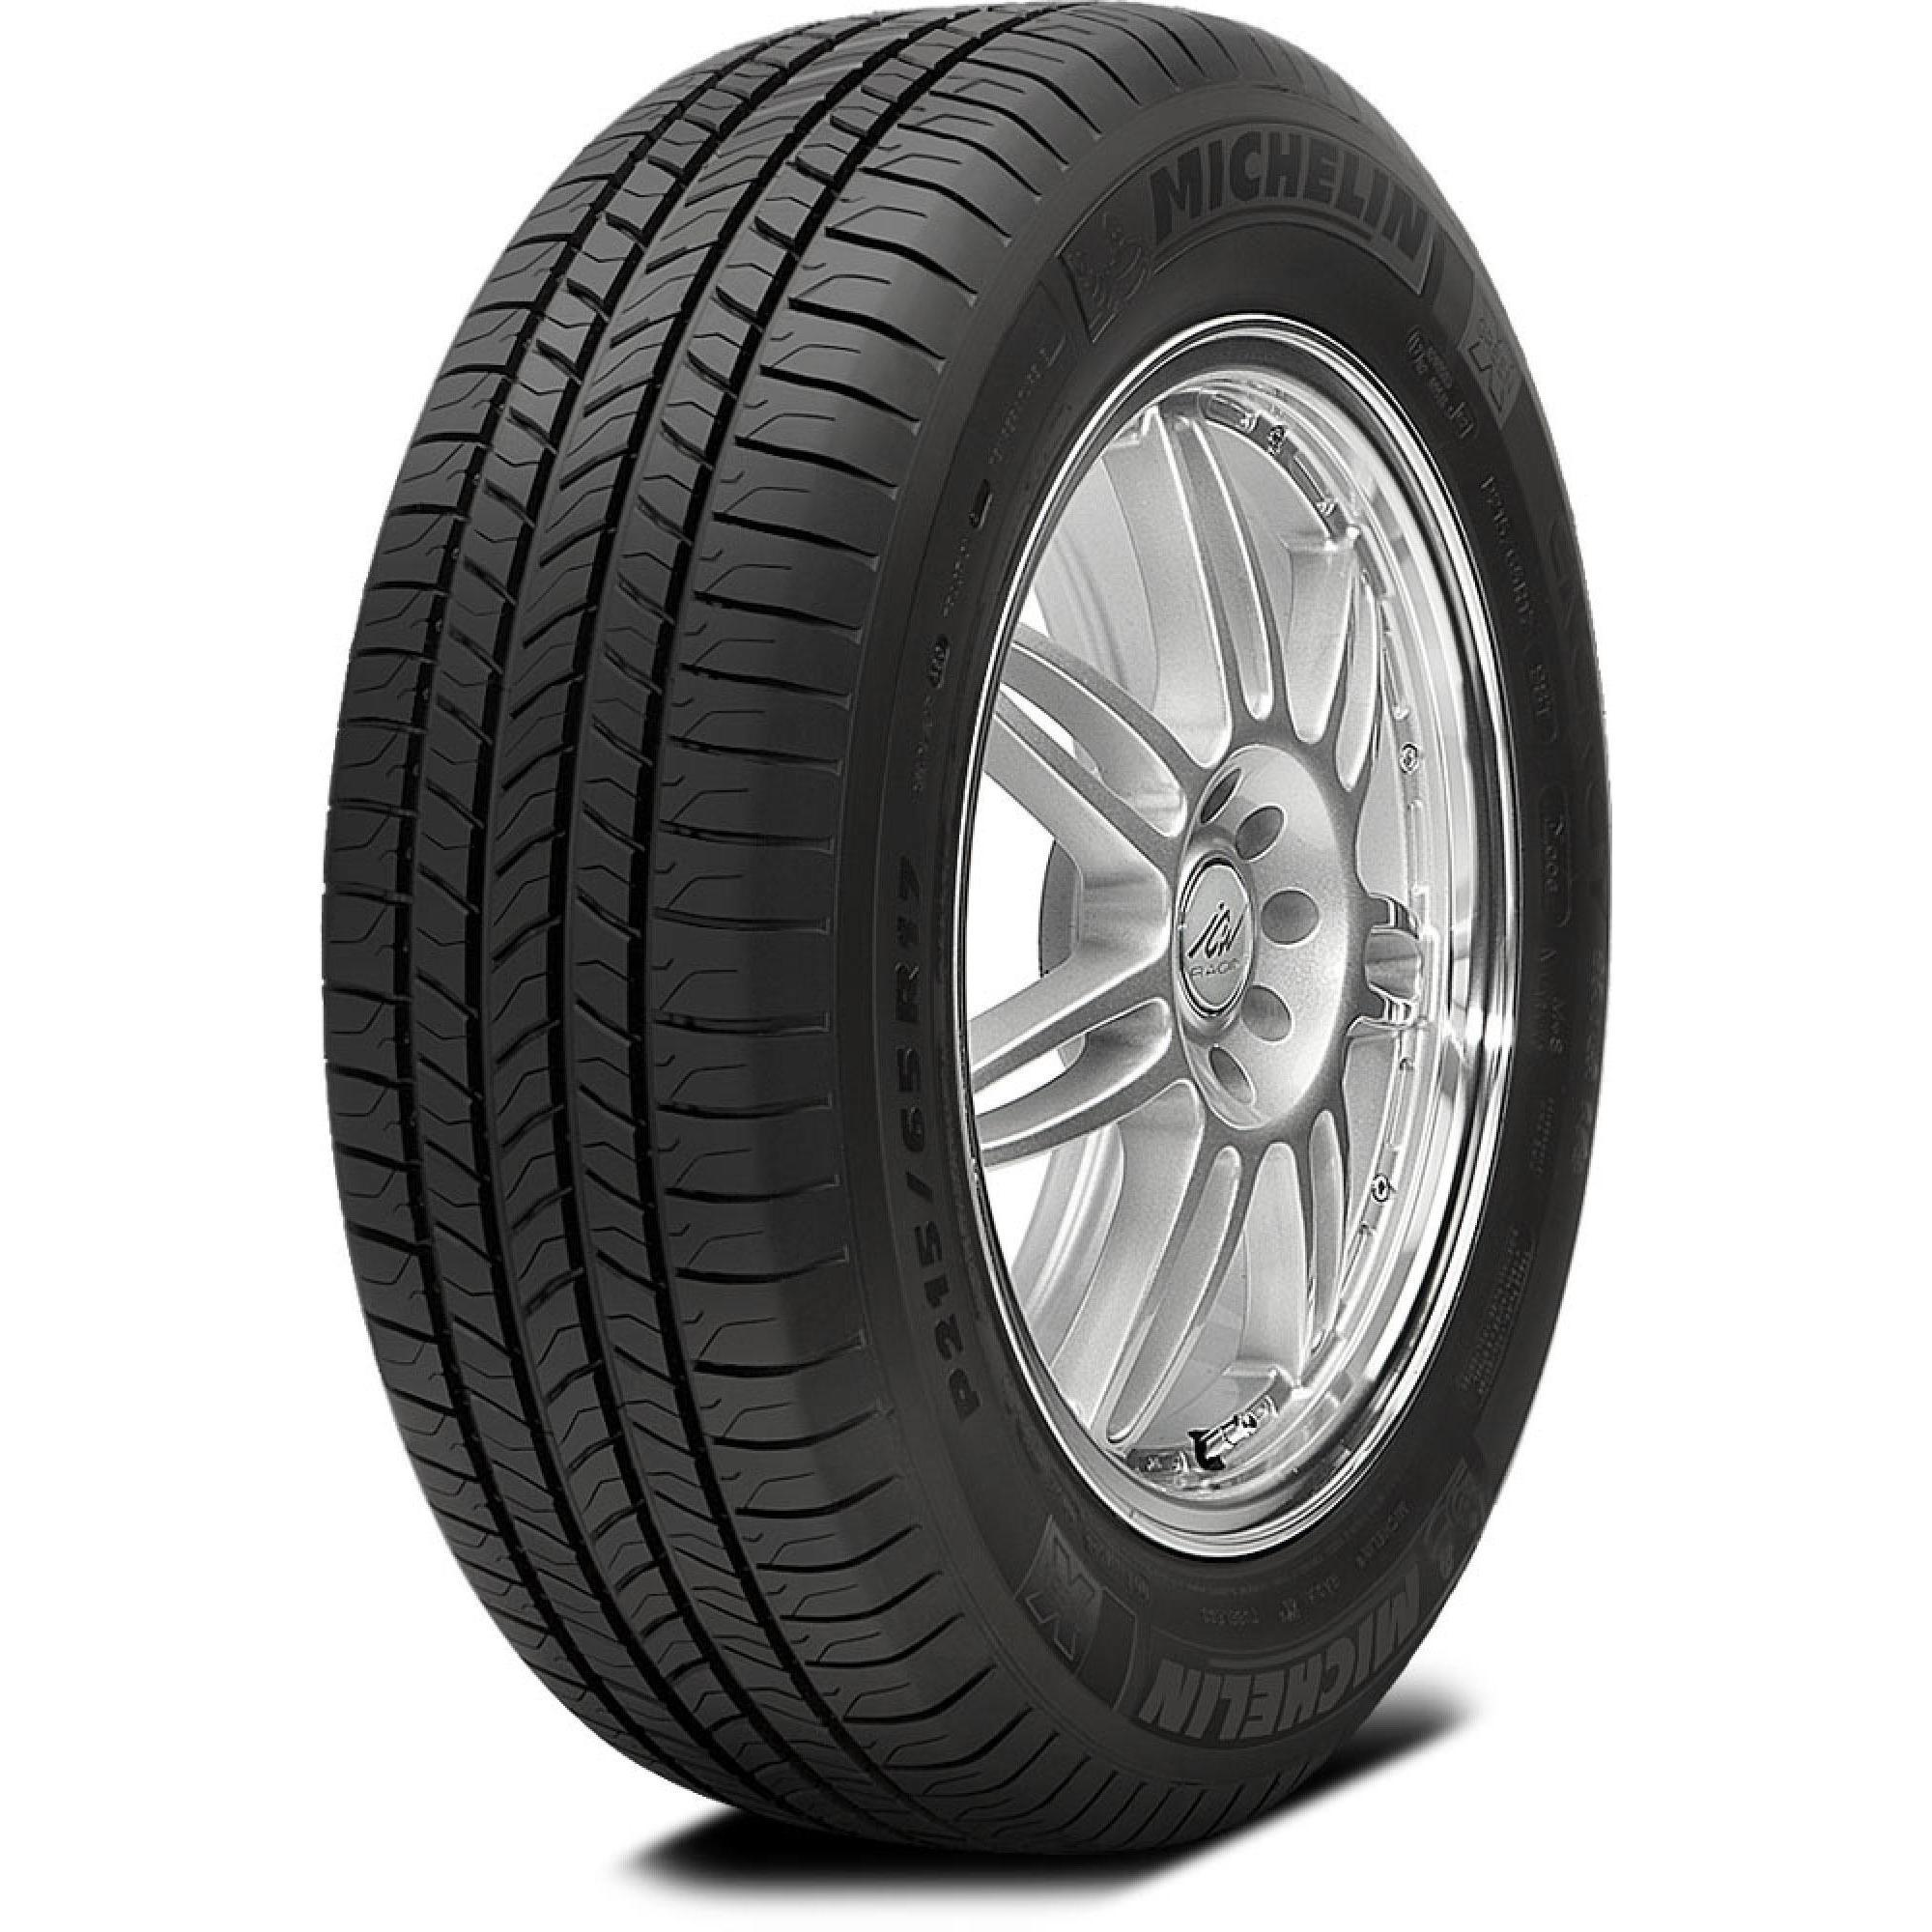 Eco-Friendly Tires and Green Tires | TireBuyer com